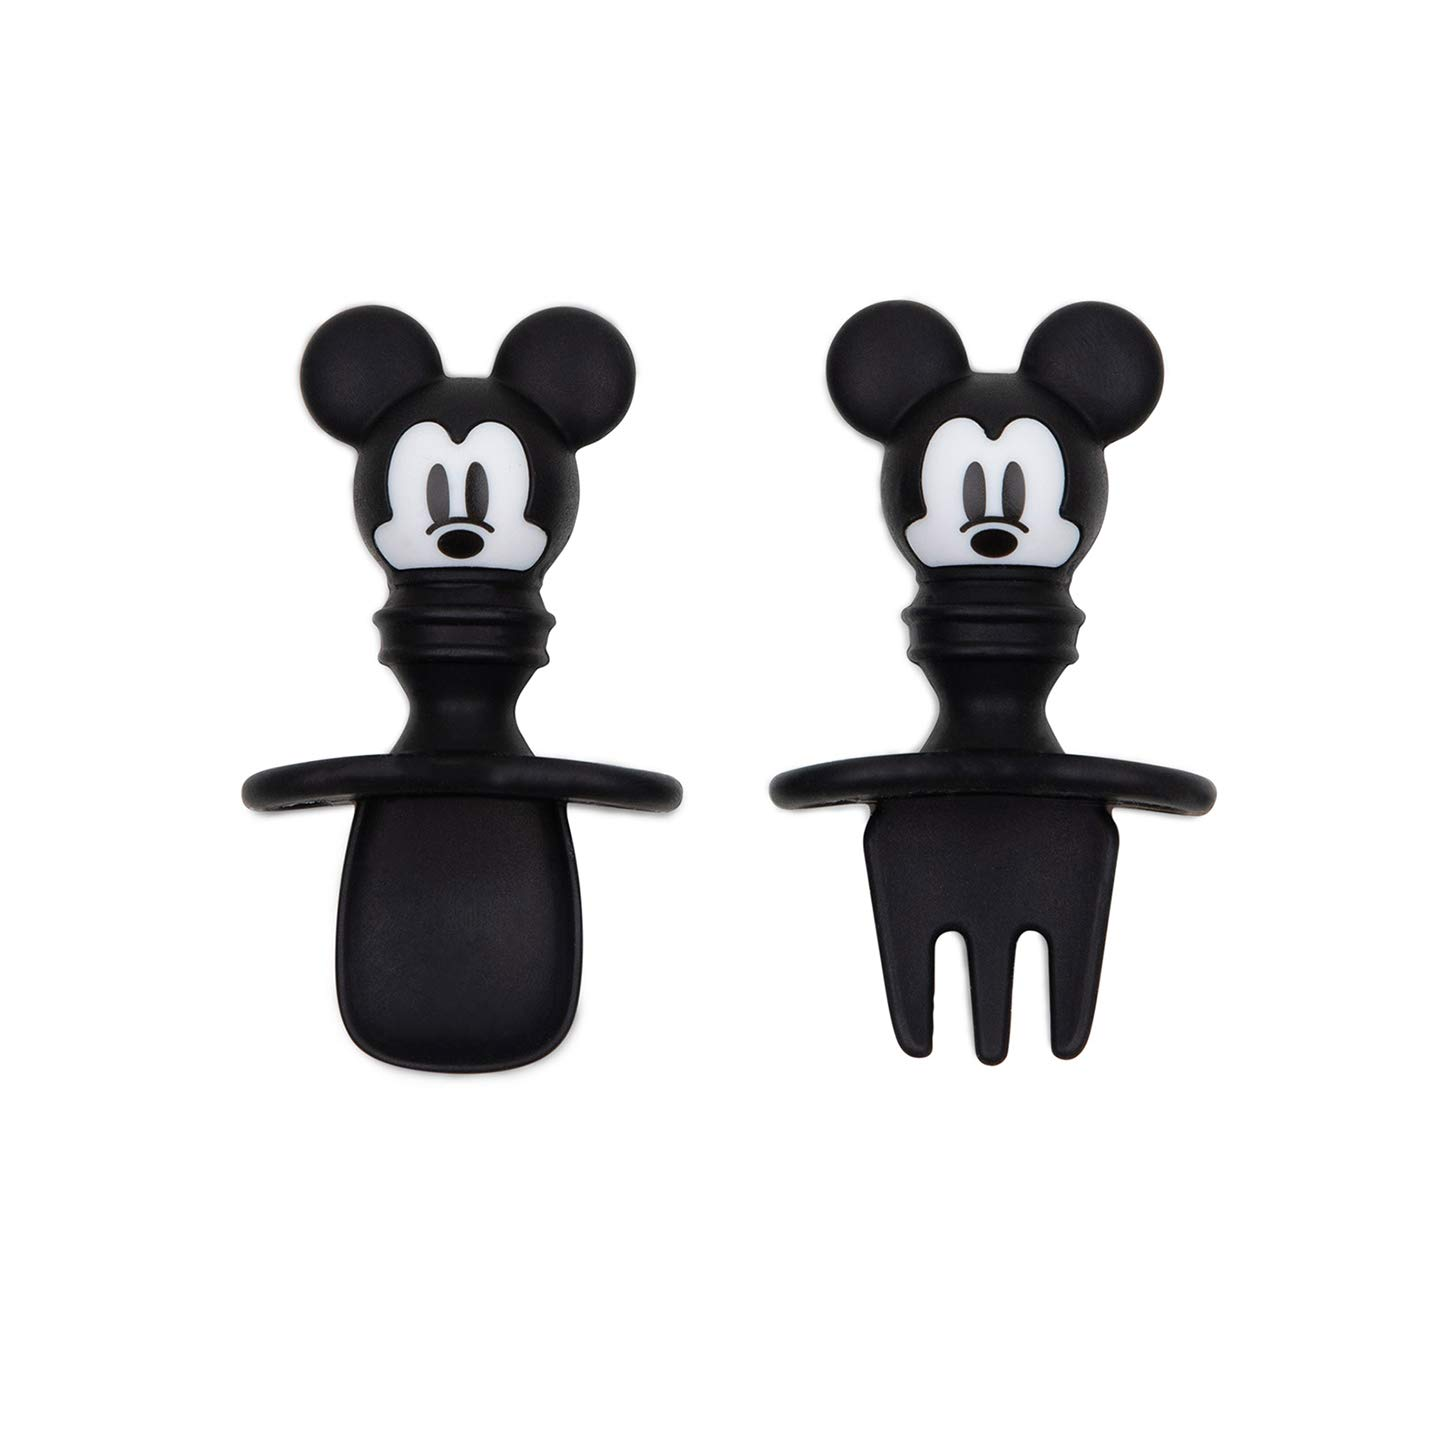 Bumkins Disney Silicone Chewtensils, Baby Fork & Spoon Set, Training Utensils, Baby Led Weaning Stage 1 for Ages 6 Months+ Mickey Mouse